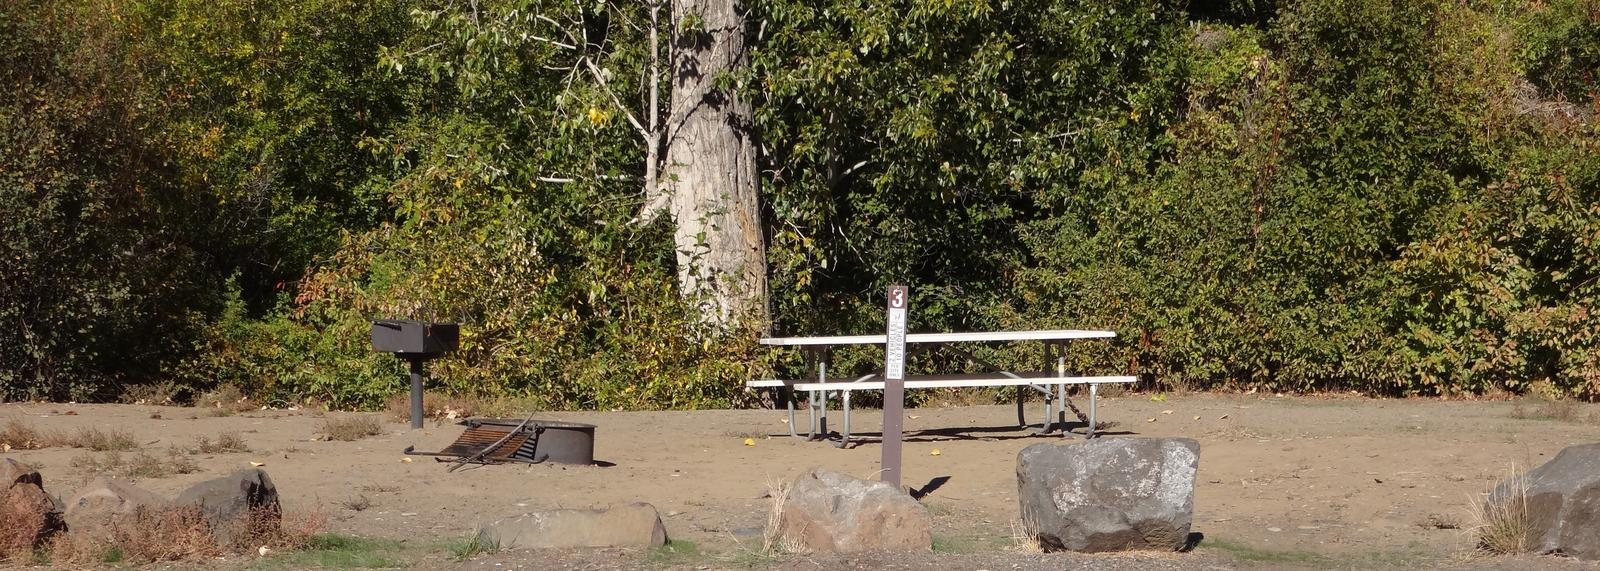 Parking spot, picnic table, BBQ grill and fire ring at Roza Campsite #3Roza campsite #3